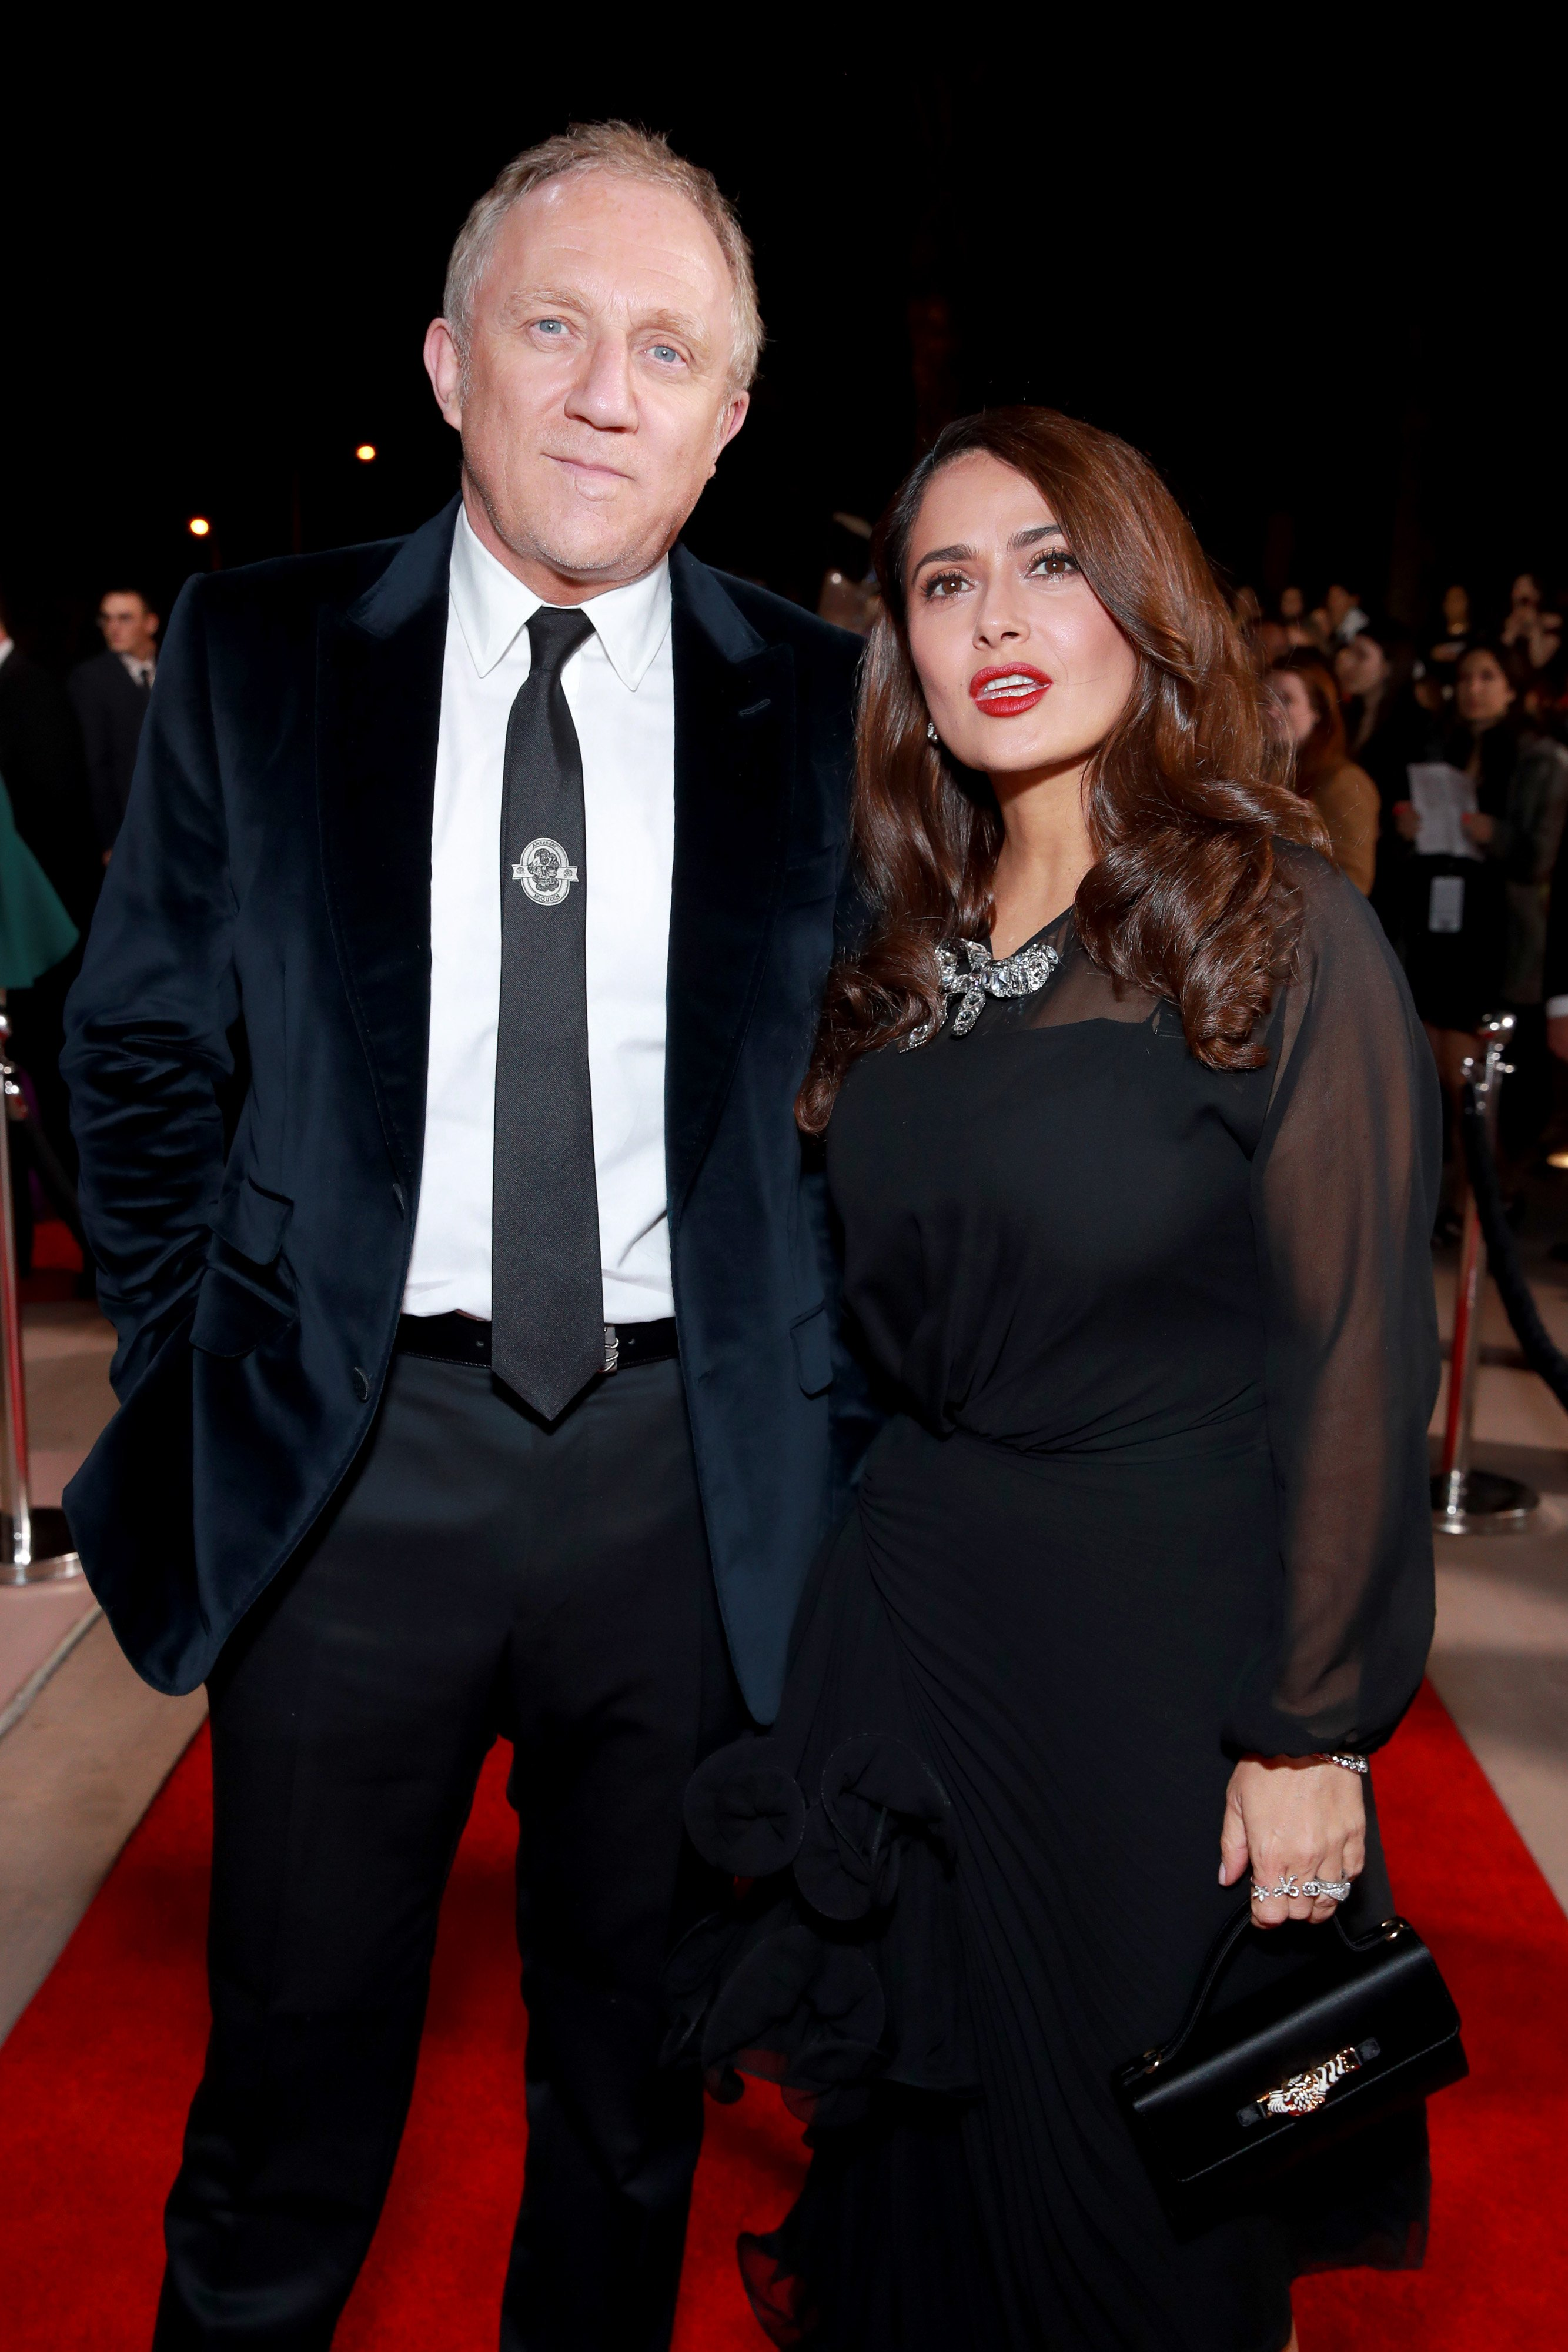 François-Henri Pinault and Salma Hayek attend the 31st Annual Palm Springs International Film Festival Film Awards Gala on January 02, 2020, in Palm Springs, California. | Source: Getty Images.